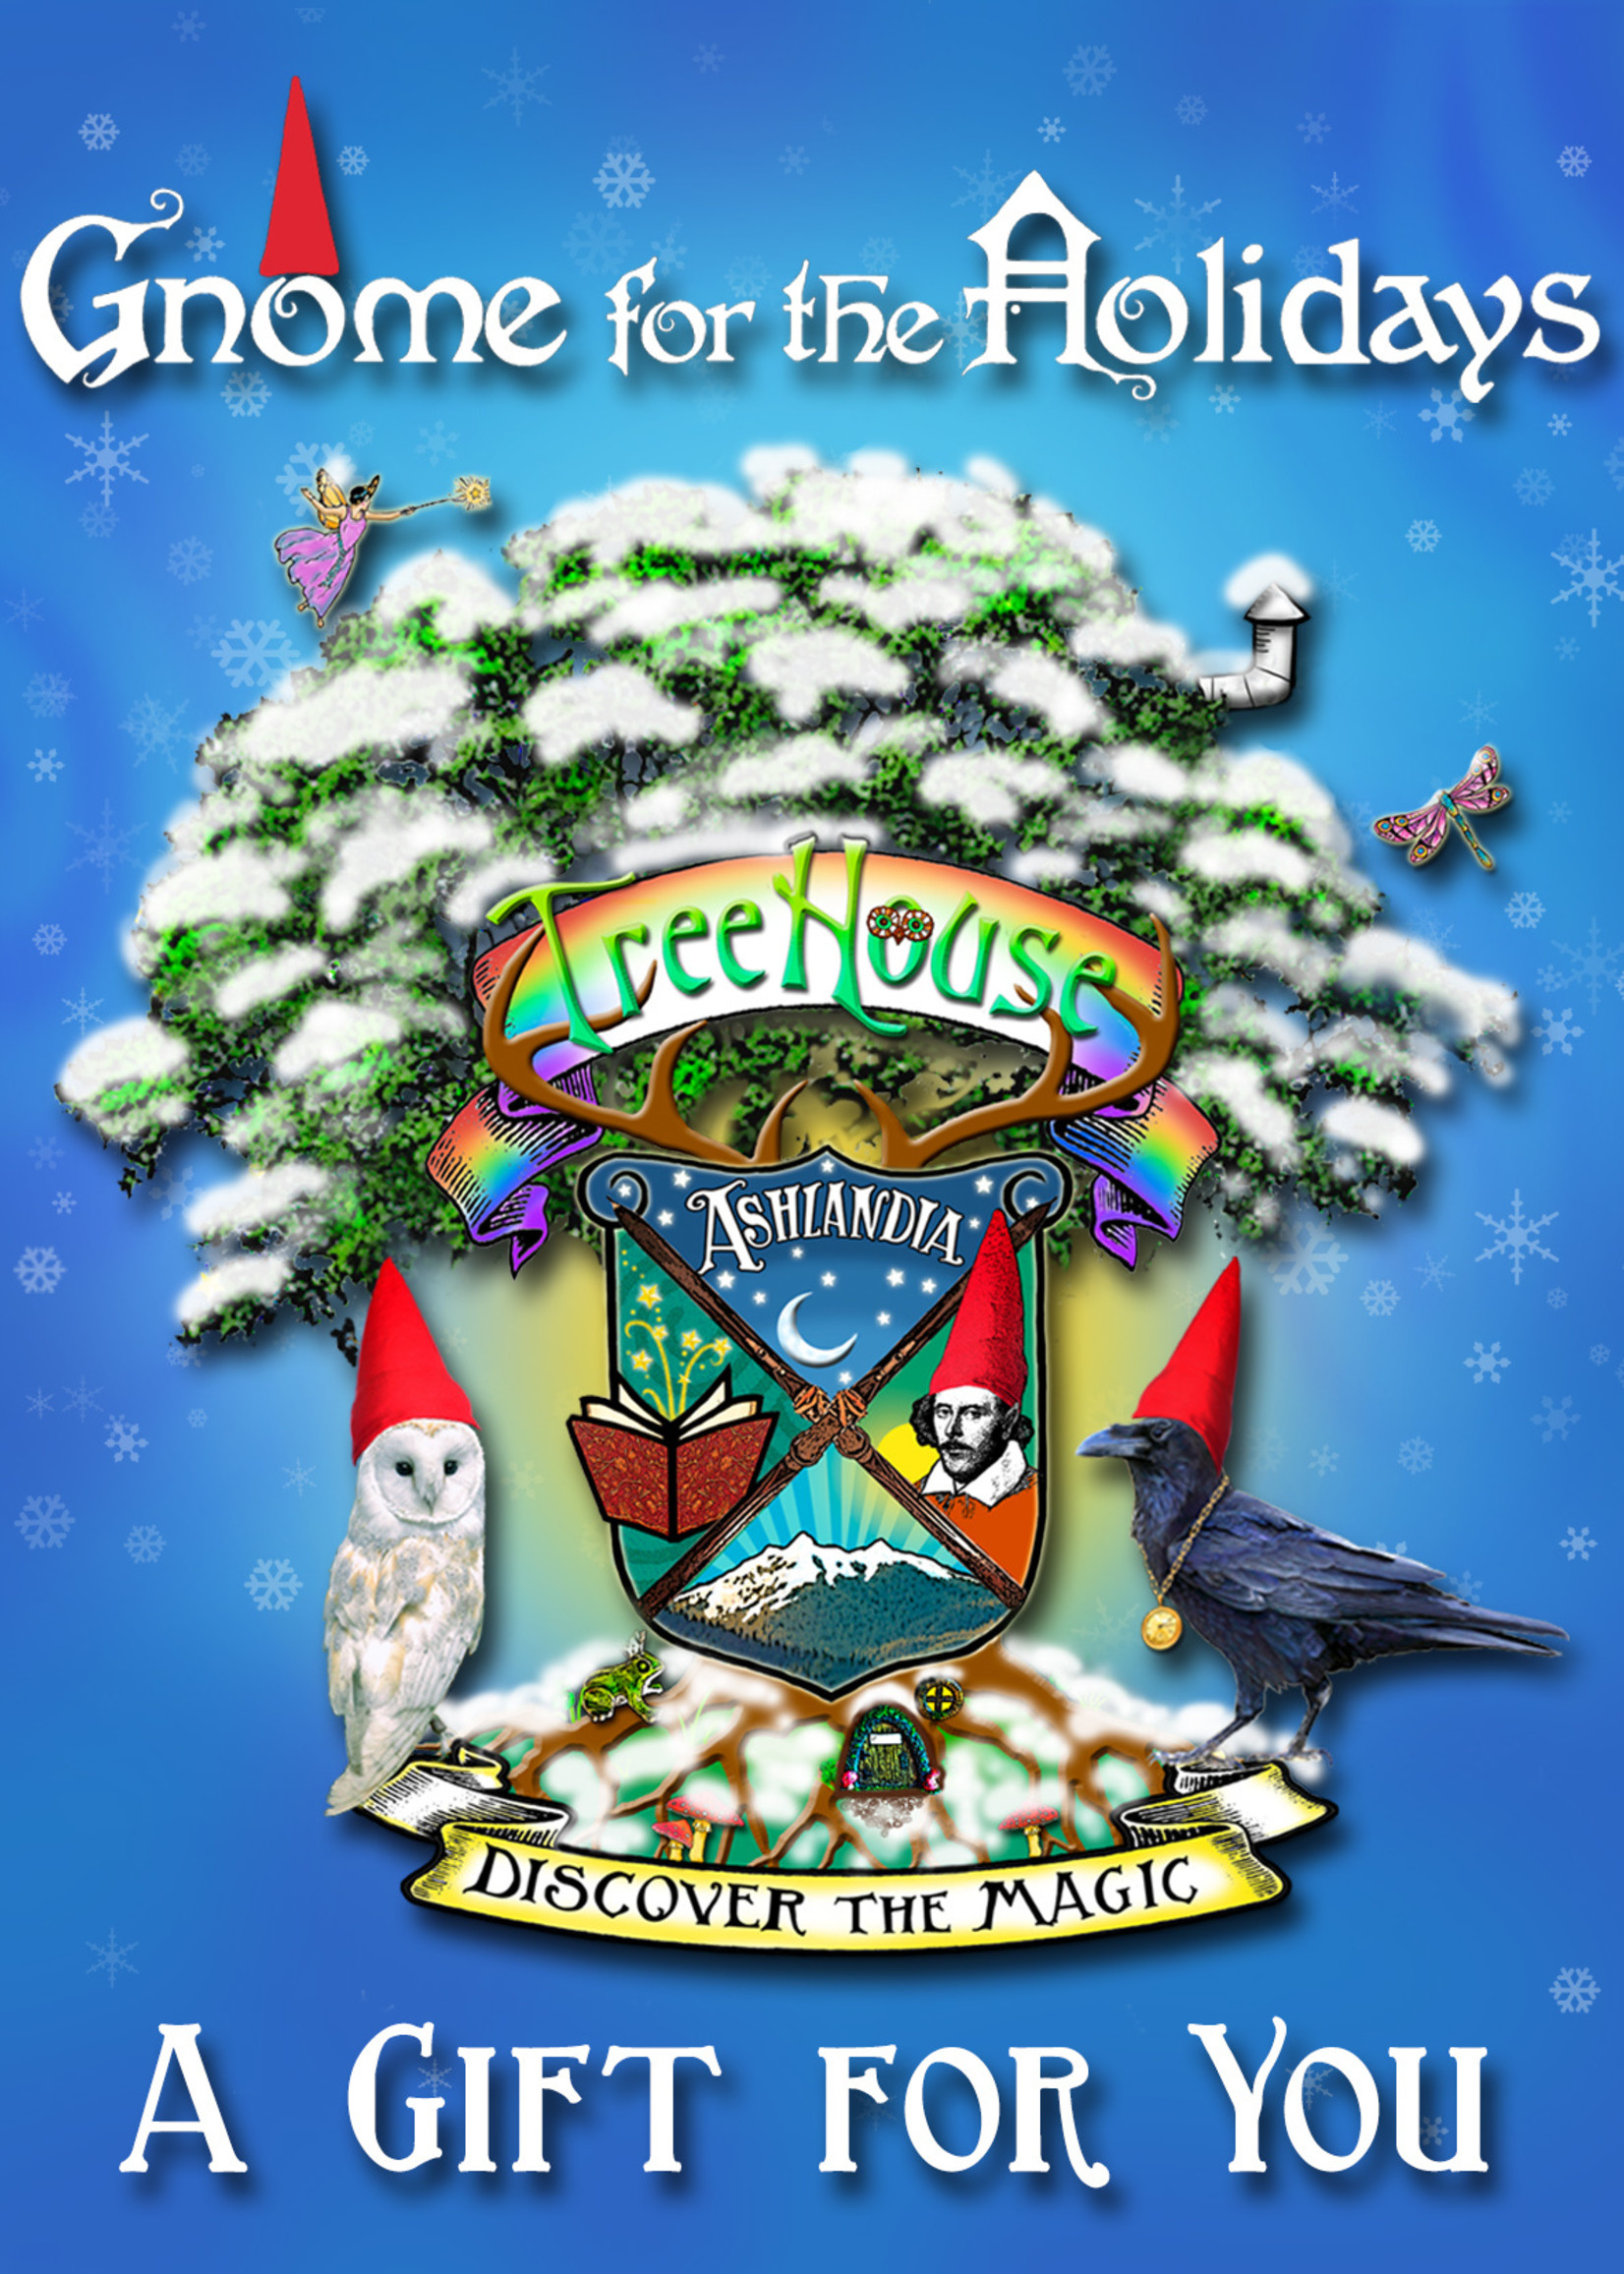 TreeHouse Gift Certificate $20.00, Web Sale